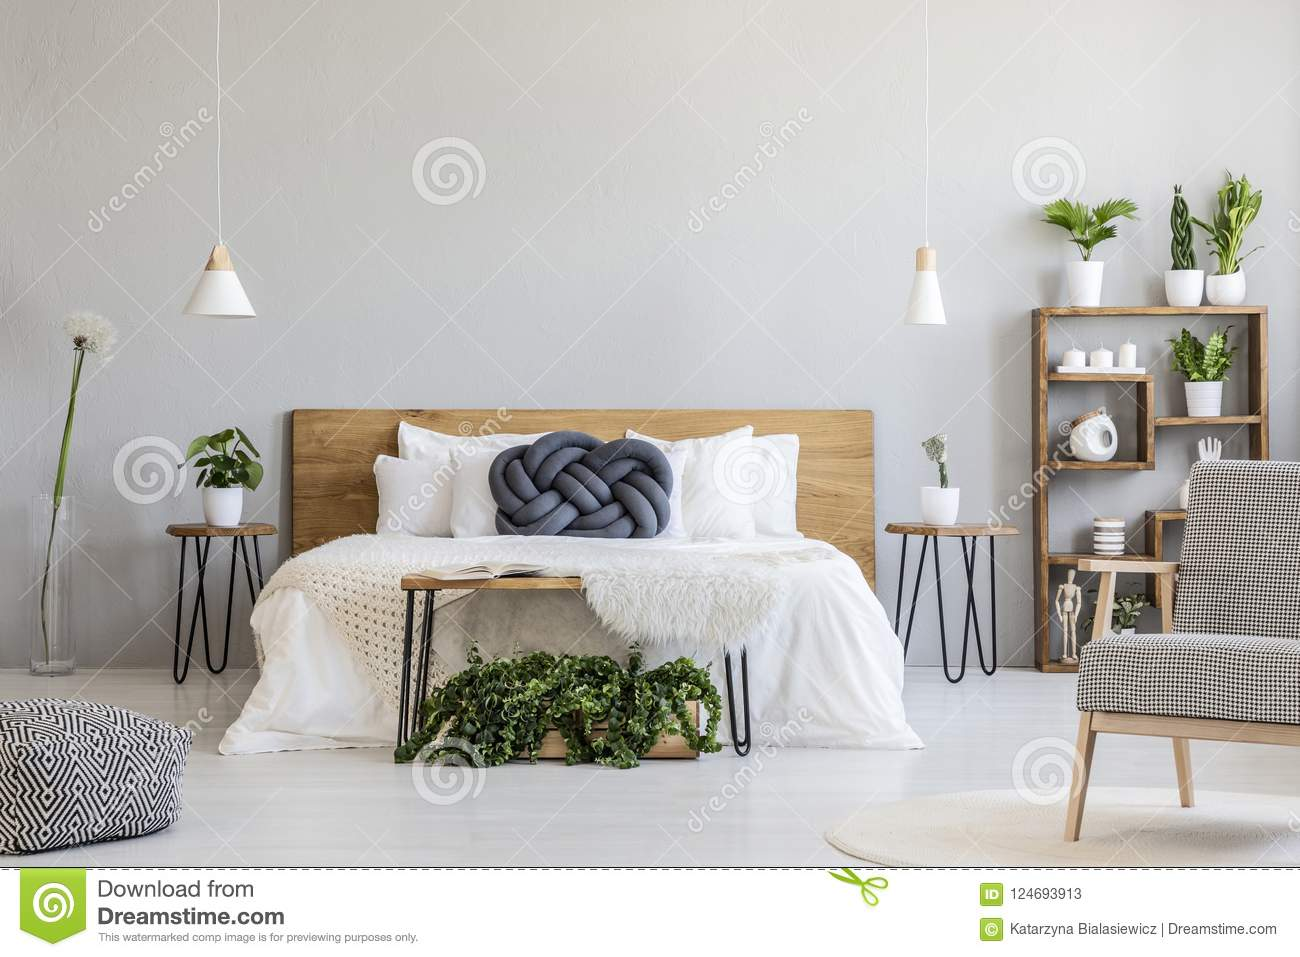 Blue Knot Pillow On White Wooden Bed In Grey Bedroom Interior Wi Stock Image Image Of Bright Home 124693913